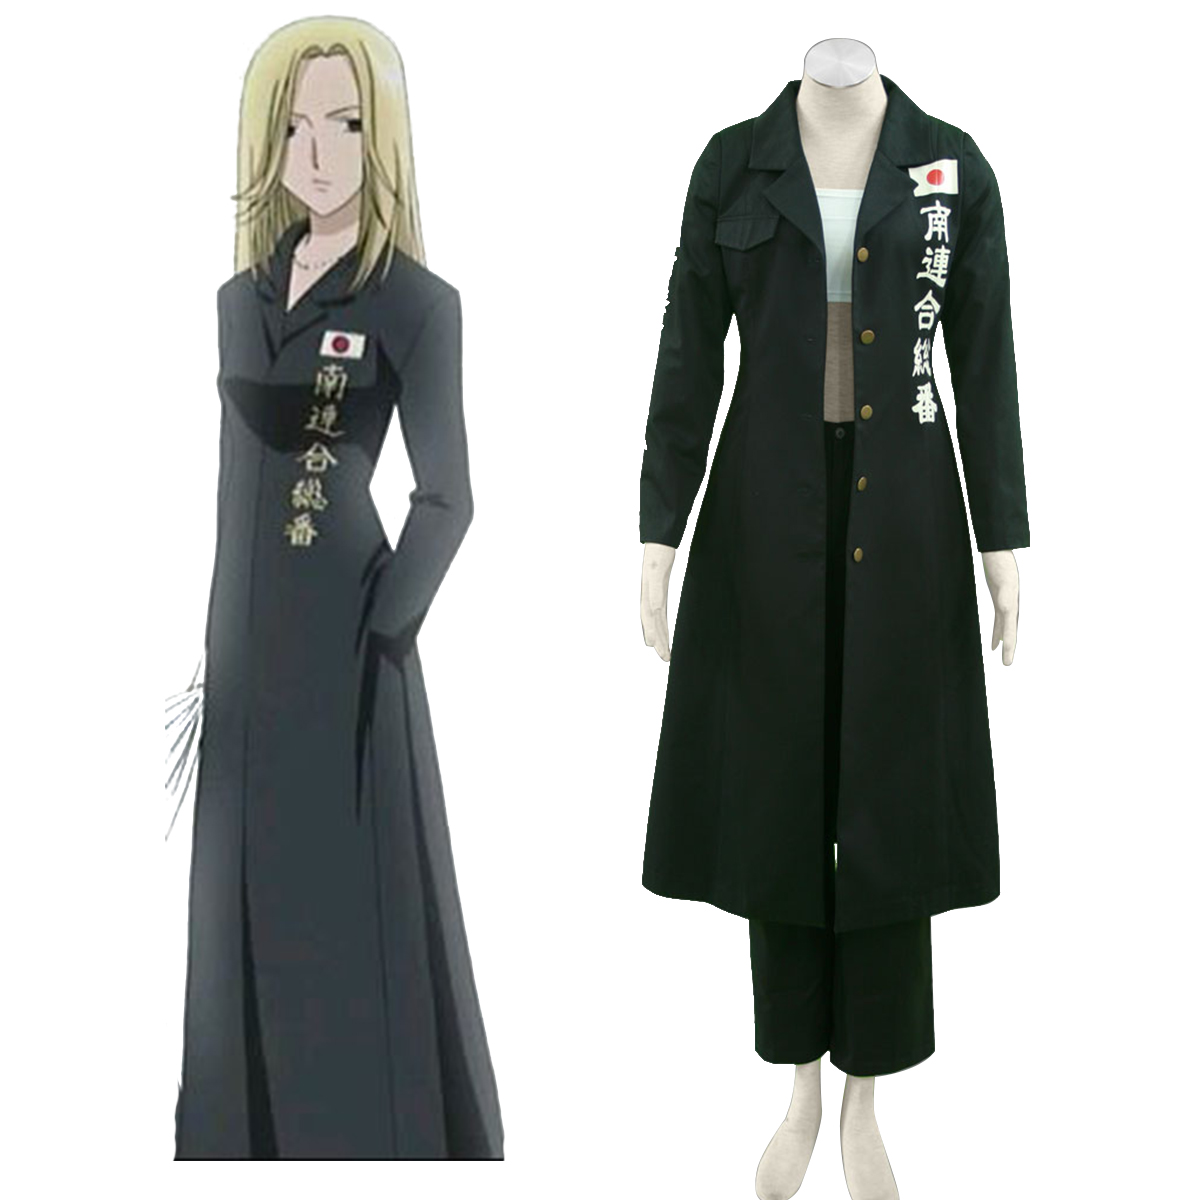 Fruits Basket Uotani Arisa Cosplay Costumes UK ...